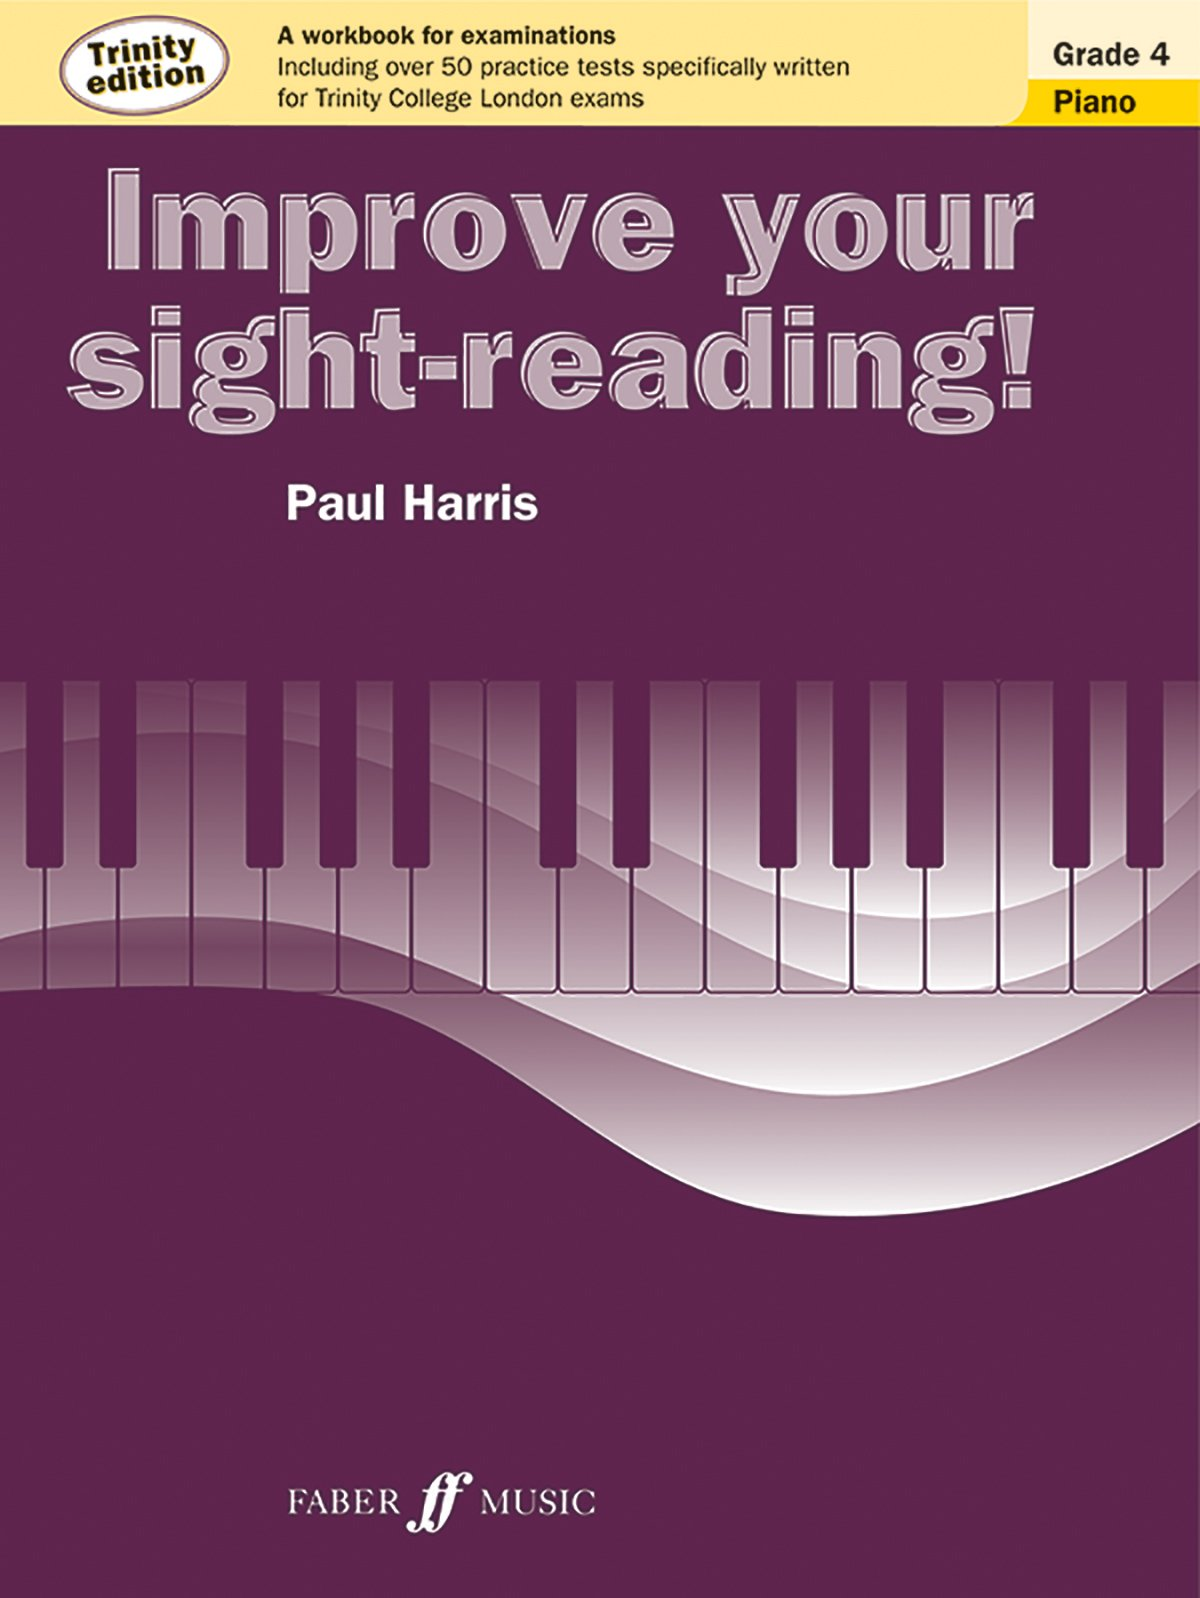 Workbooks music in theory and practice workbook : Improve Your Sight-reading! Trinity Piano, Grade 4: A Workbook for ...